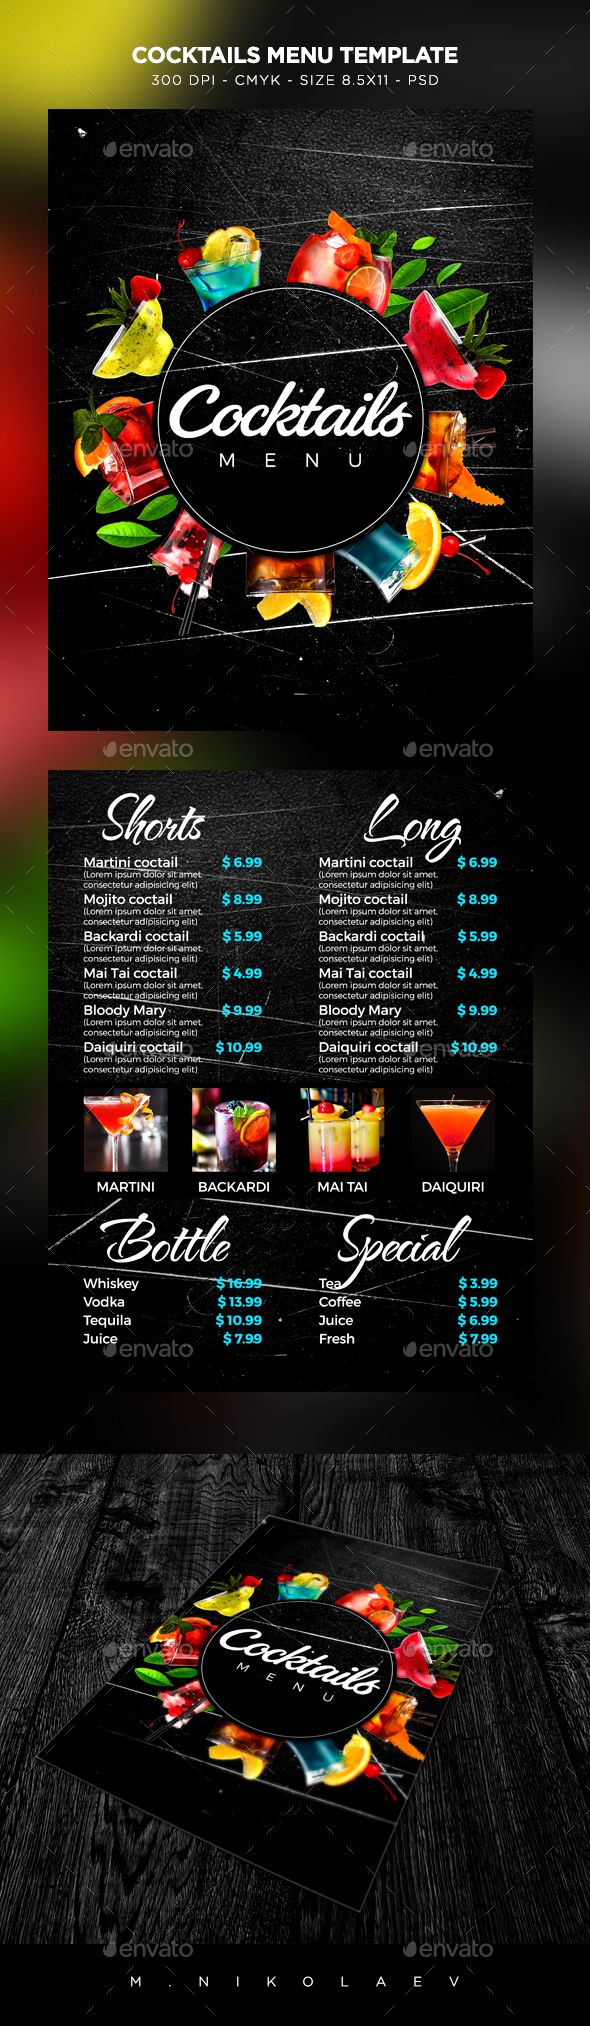 Cocktail Menu Template Free Lovely Pin About Drink Menu and Cocktail Menu On the Encore Bar